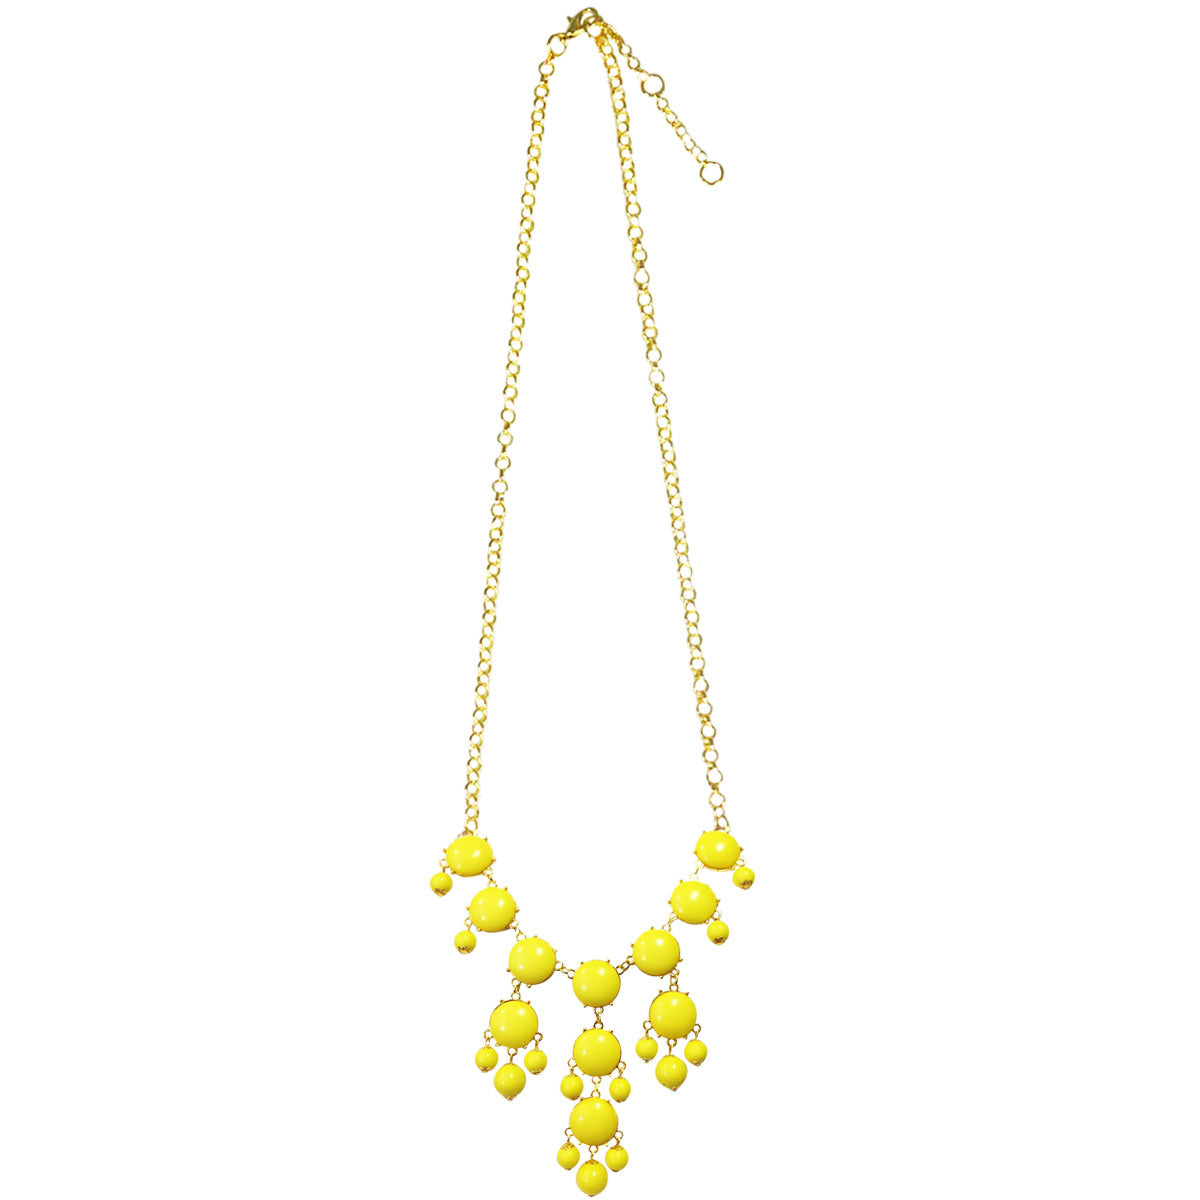 Medium Bubble Bib Statement Necklace, Yellow